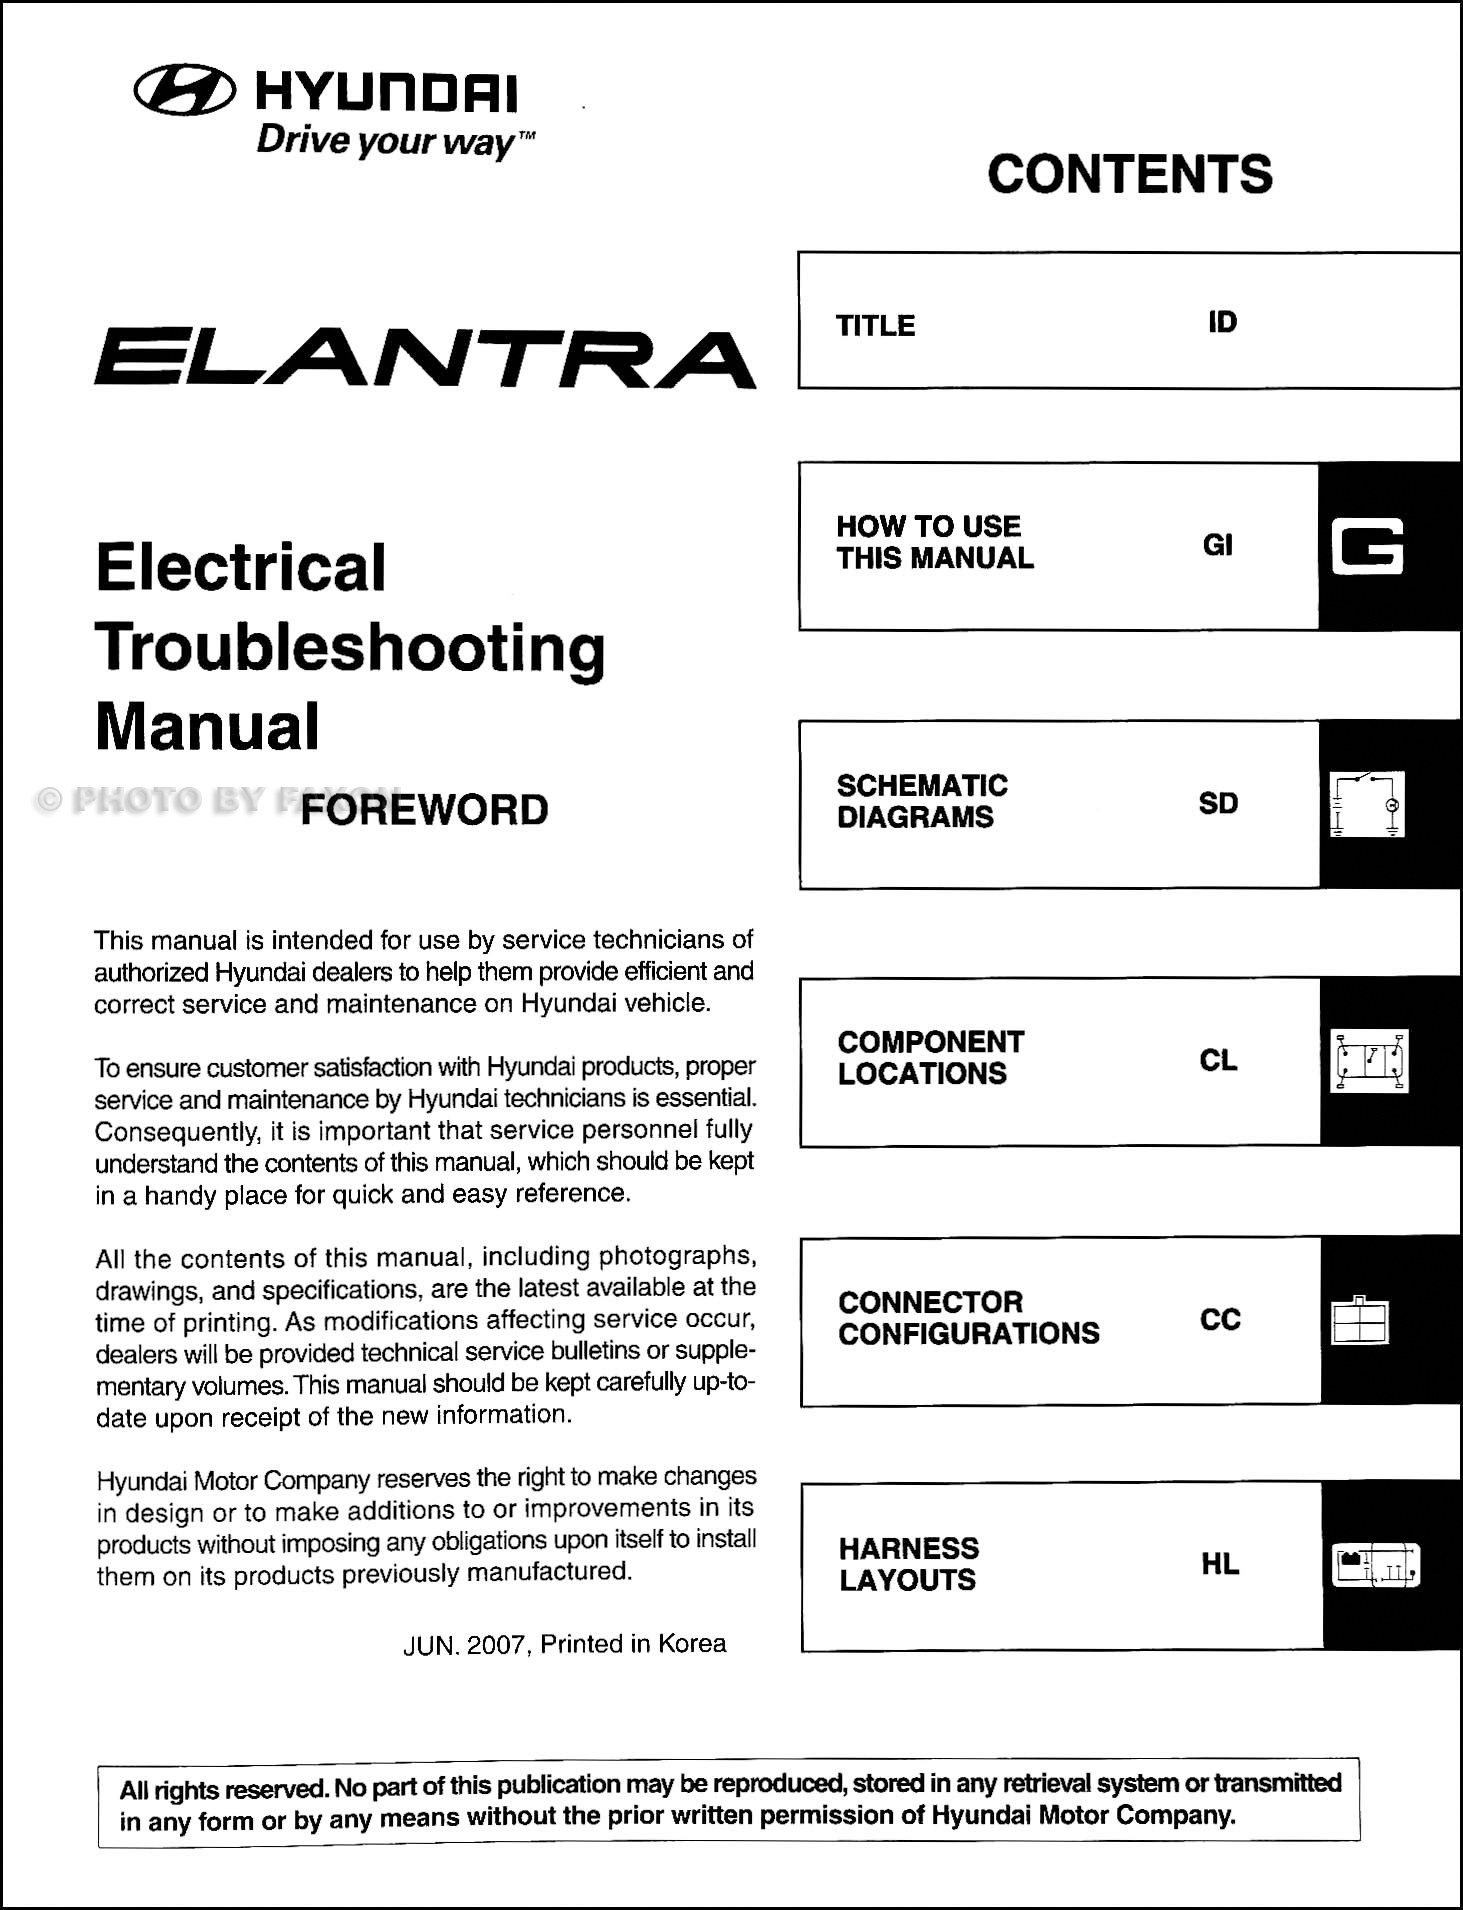 2000 hyundai elantra wiring diagram class for college management system harness accent free download diagrams